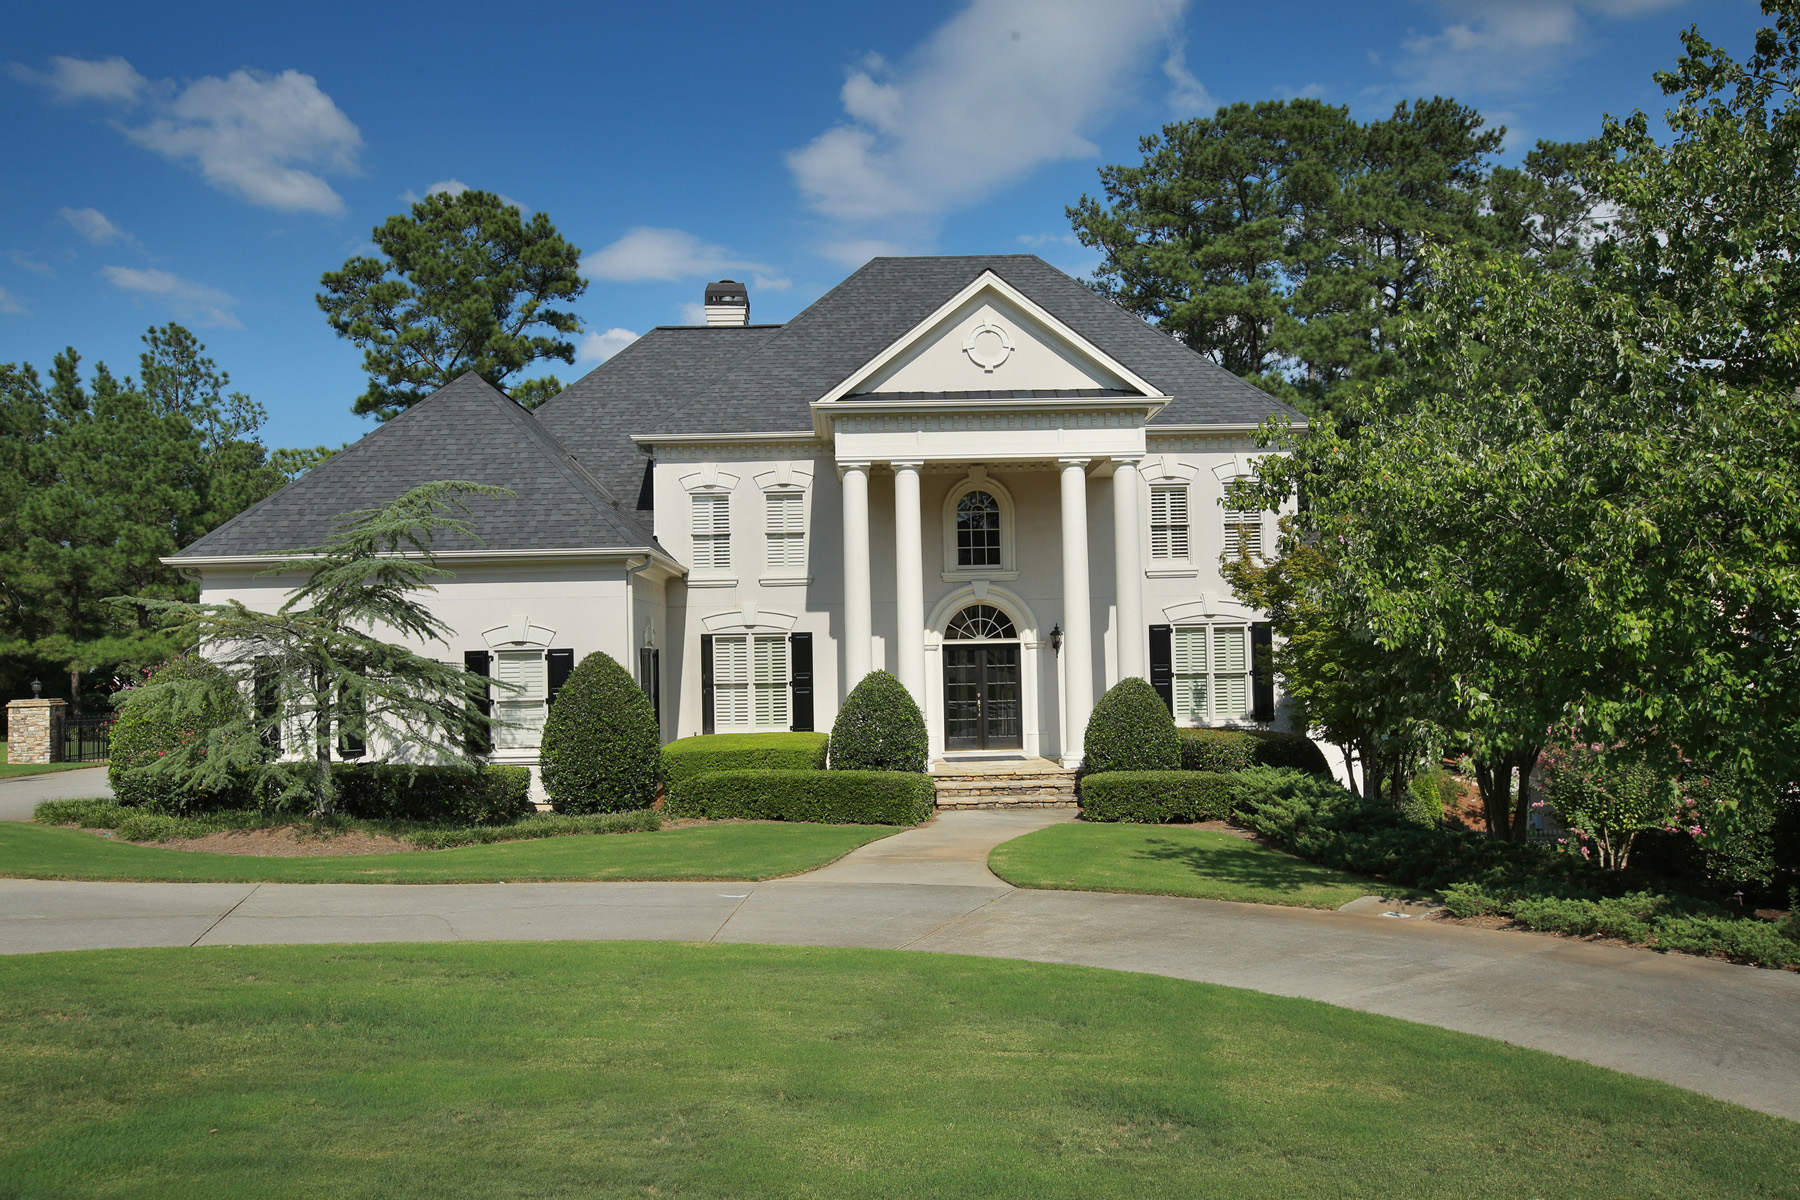 Single Family Home for Sale at Fabulous Grande Home On The Golf Course! 8035 Royal Saint Georges Lane Duluth, Georgia, 30097 United States